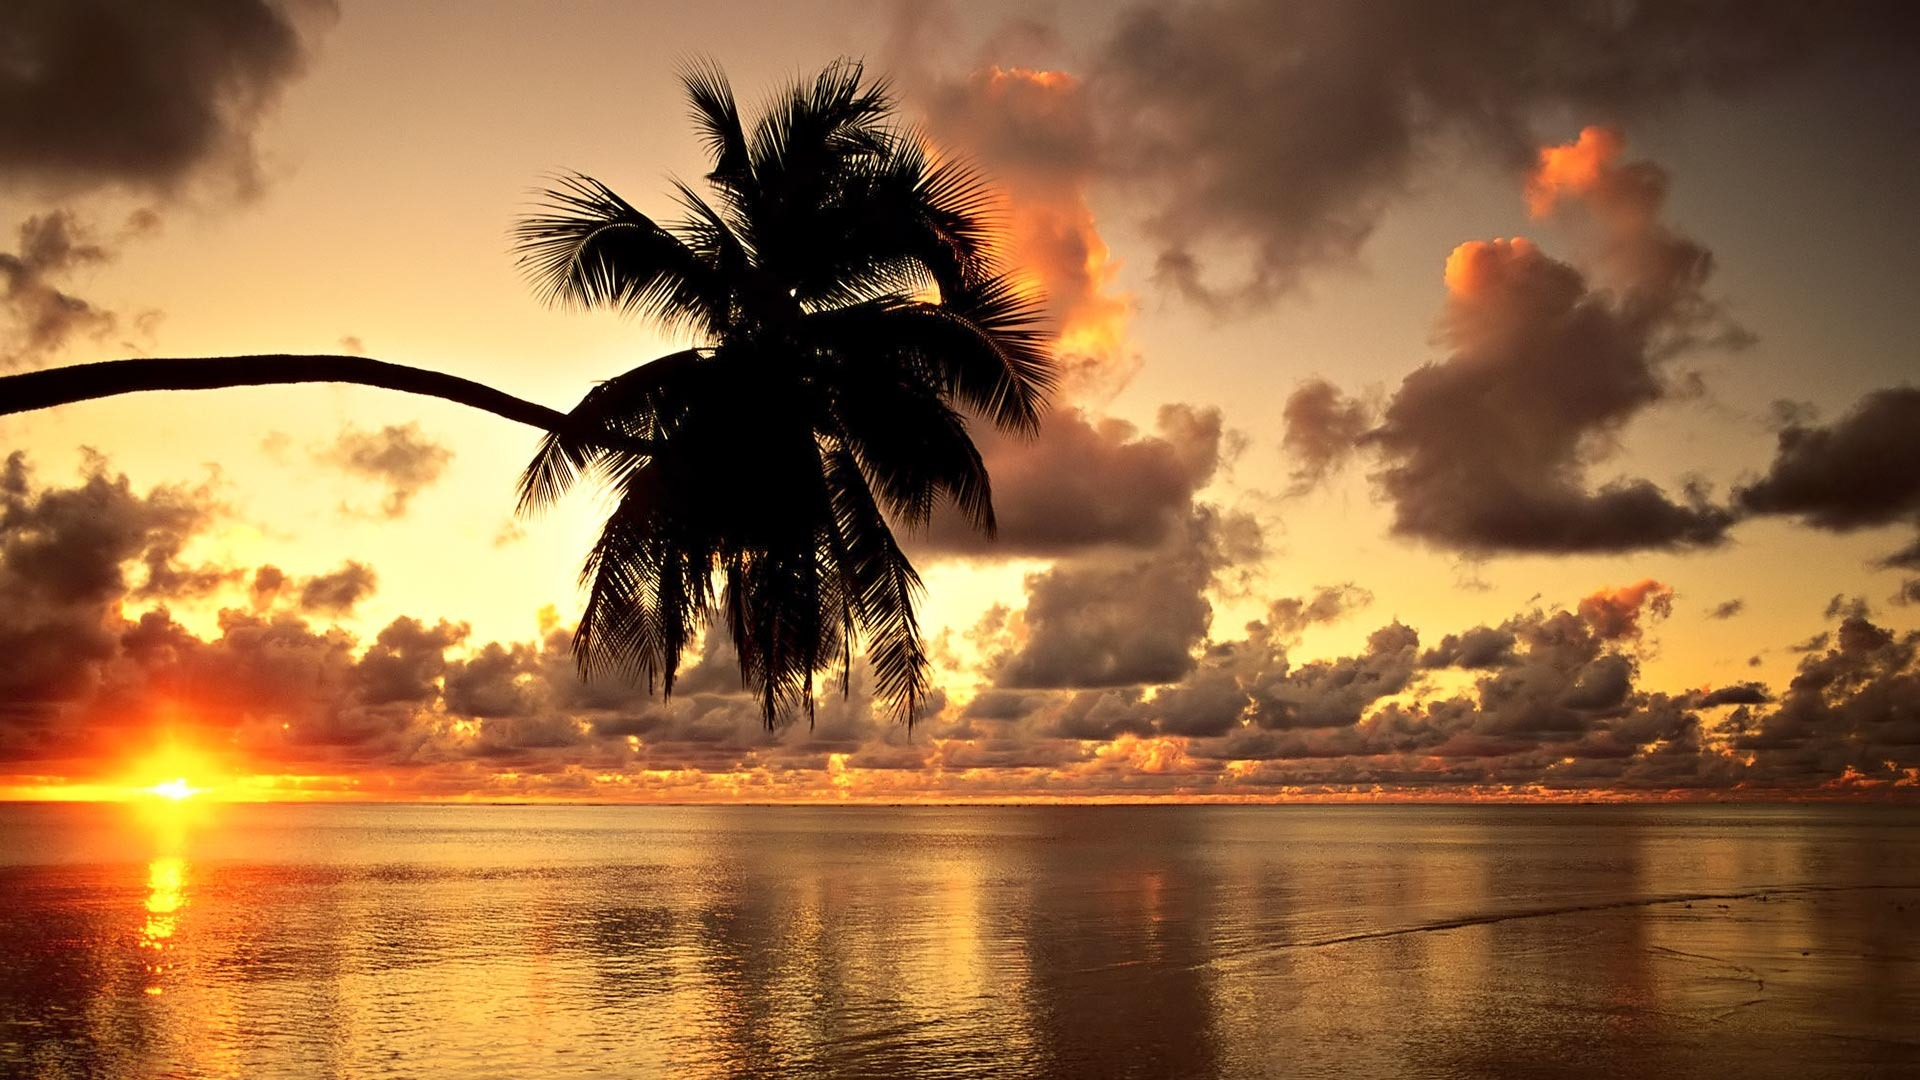 Hawaiian Sunset HD Beach Wallpapers 1080p Archives   HD Wallpapers 1920x1080